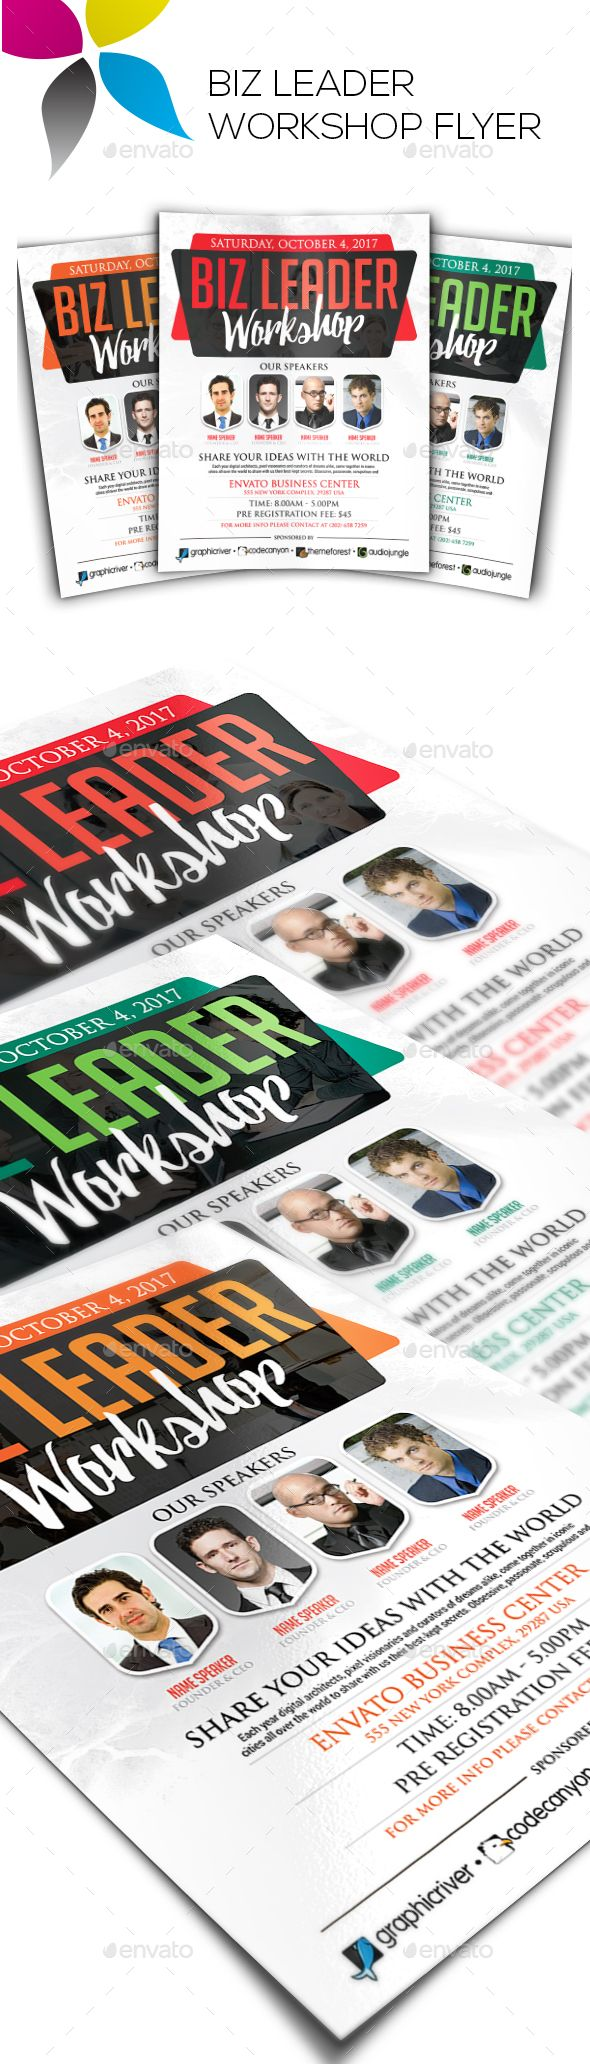 Biz leader workshop flyer flyer template business flyer templates biz leader workshop flyer photoshop psd advertisement entrepreneur available here https saigontimesfo